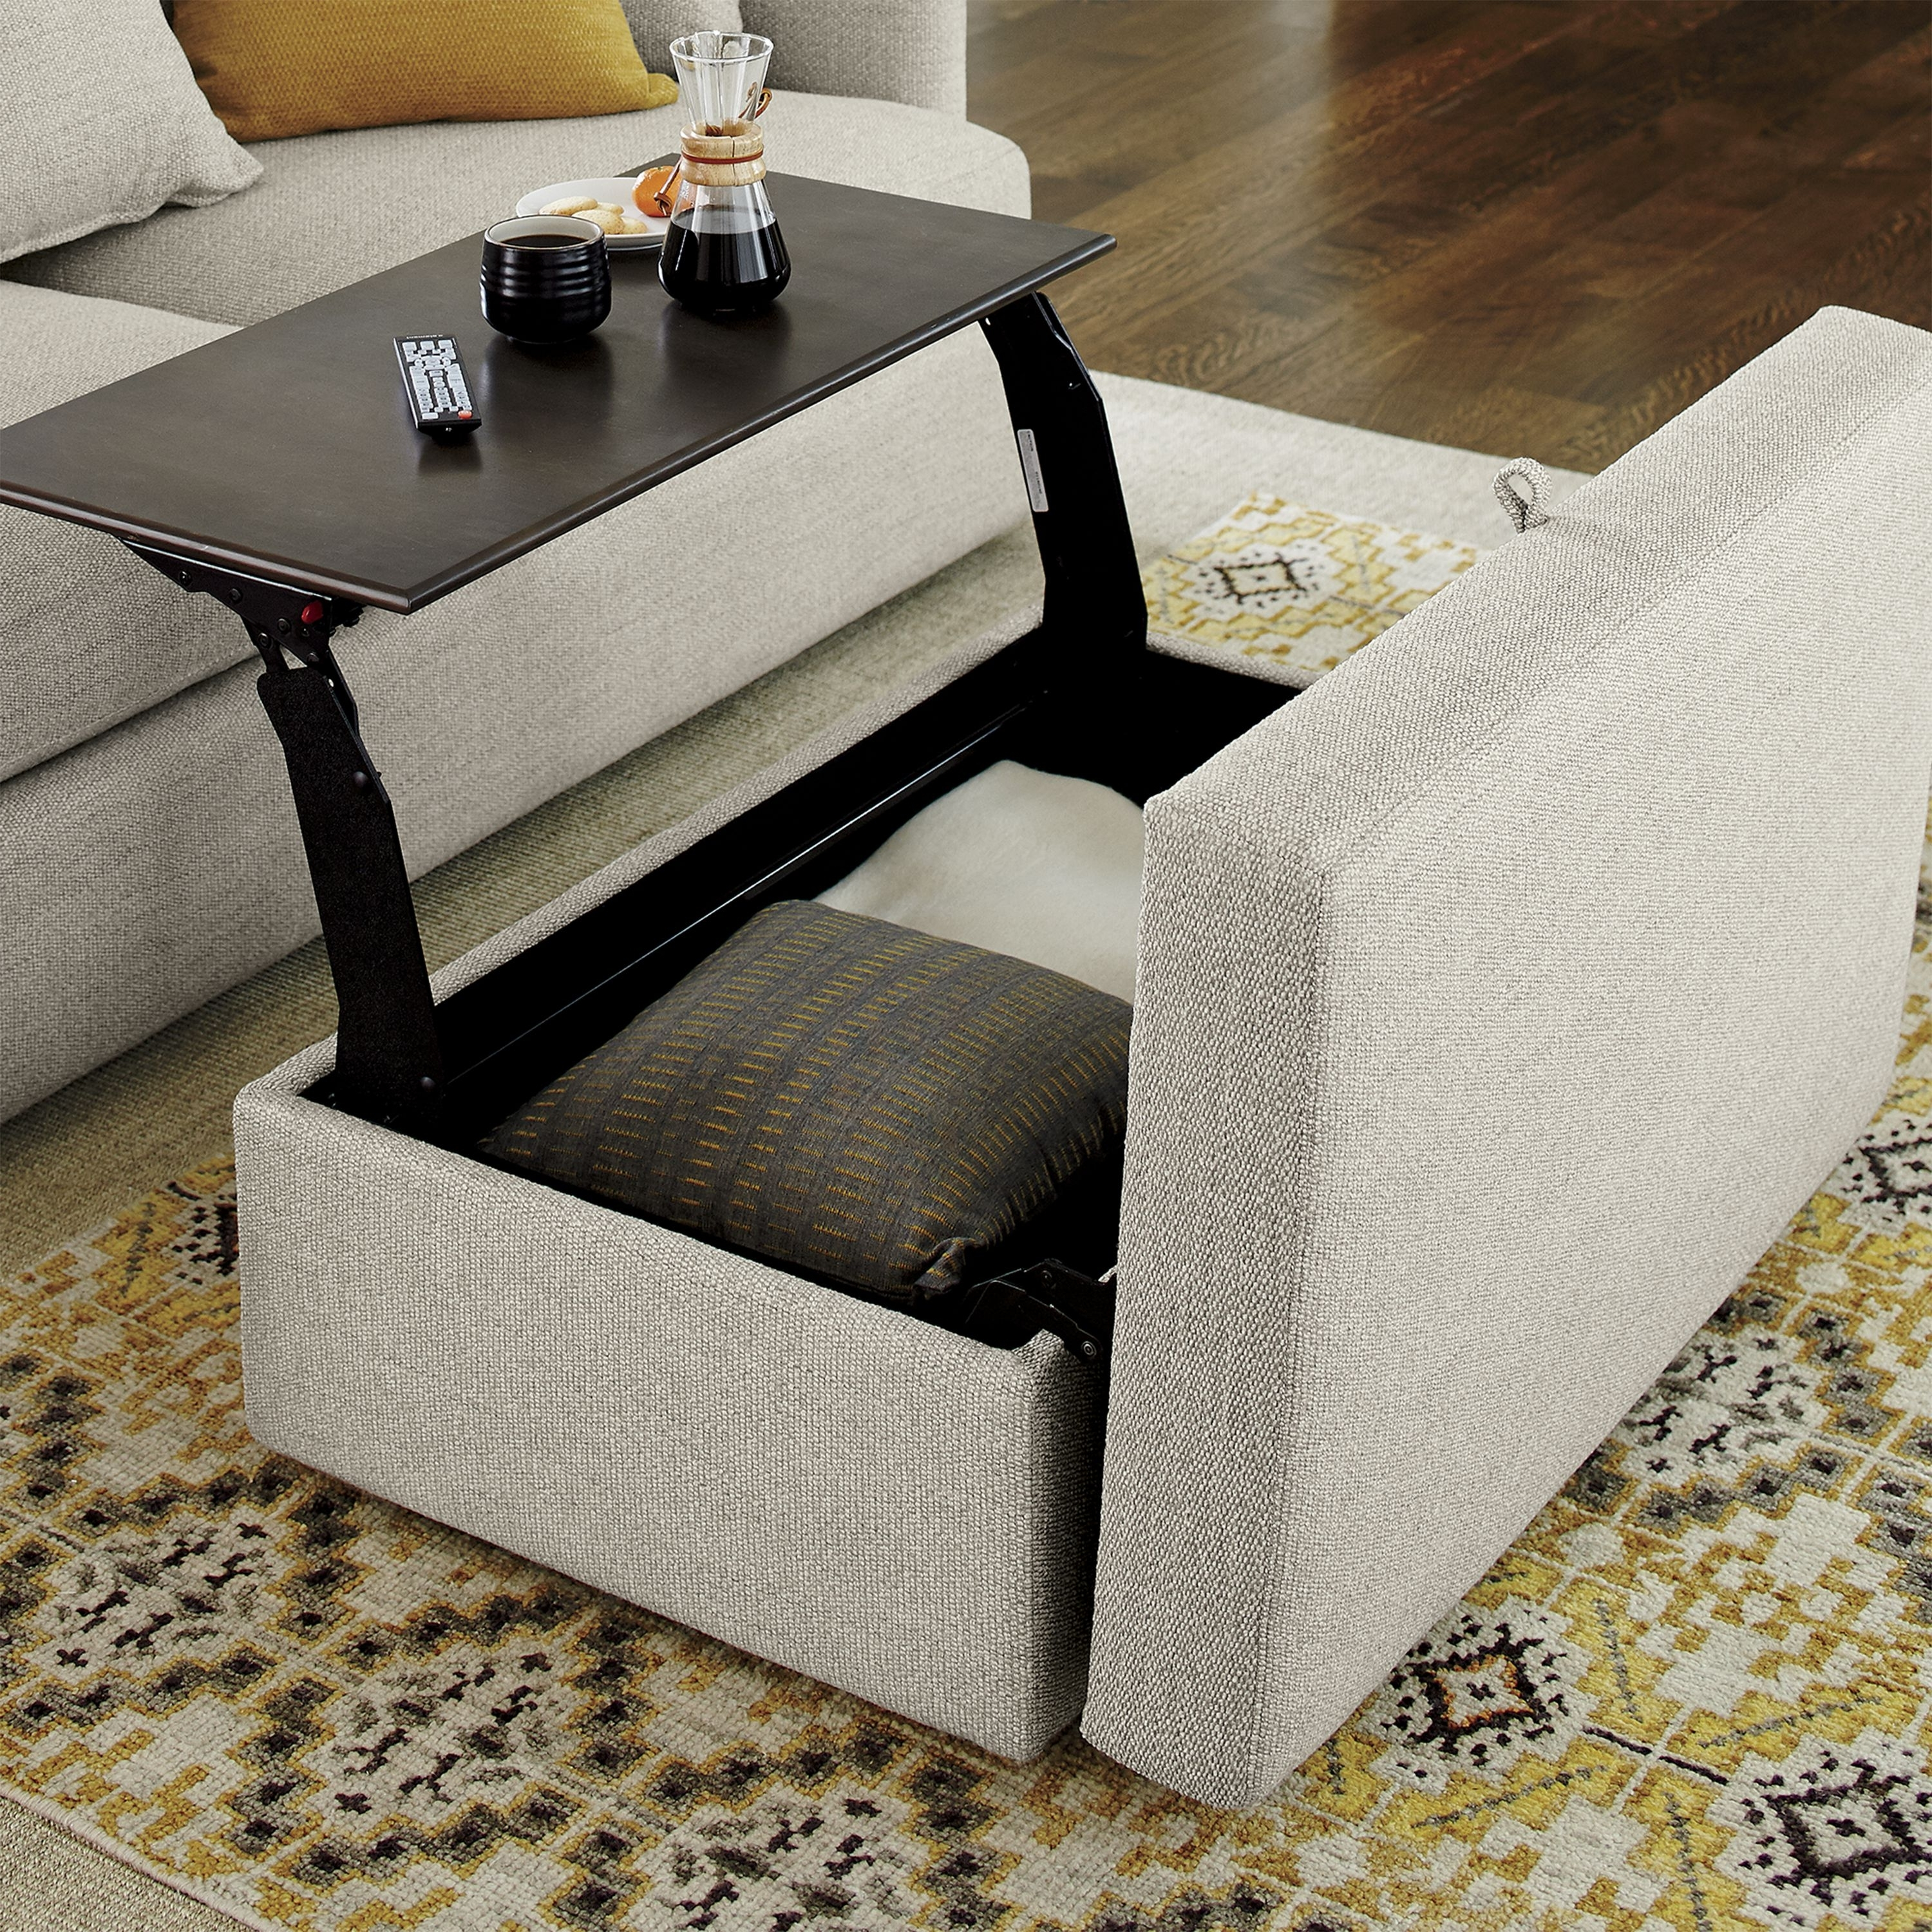 Ottomans With Tray In Fashionable Lounge Ii Storage Ottoman With Tray (View 11 of 20)